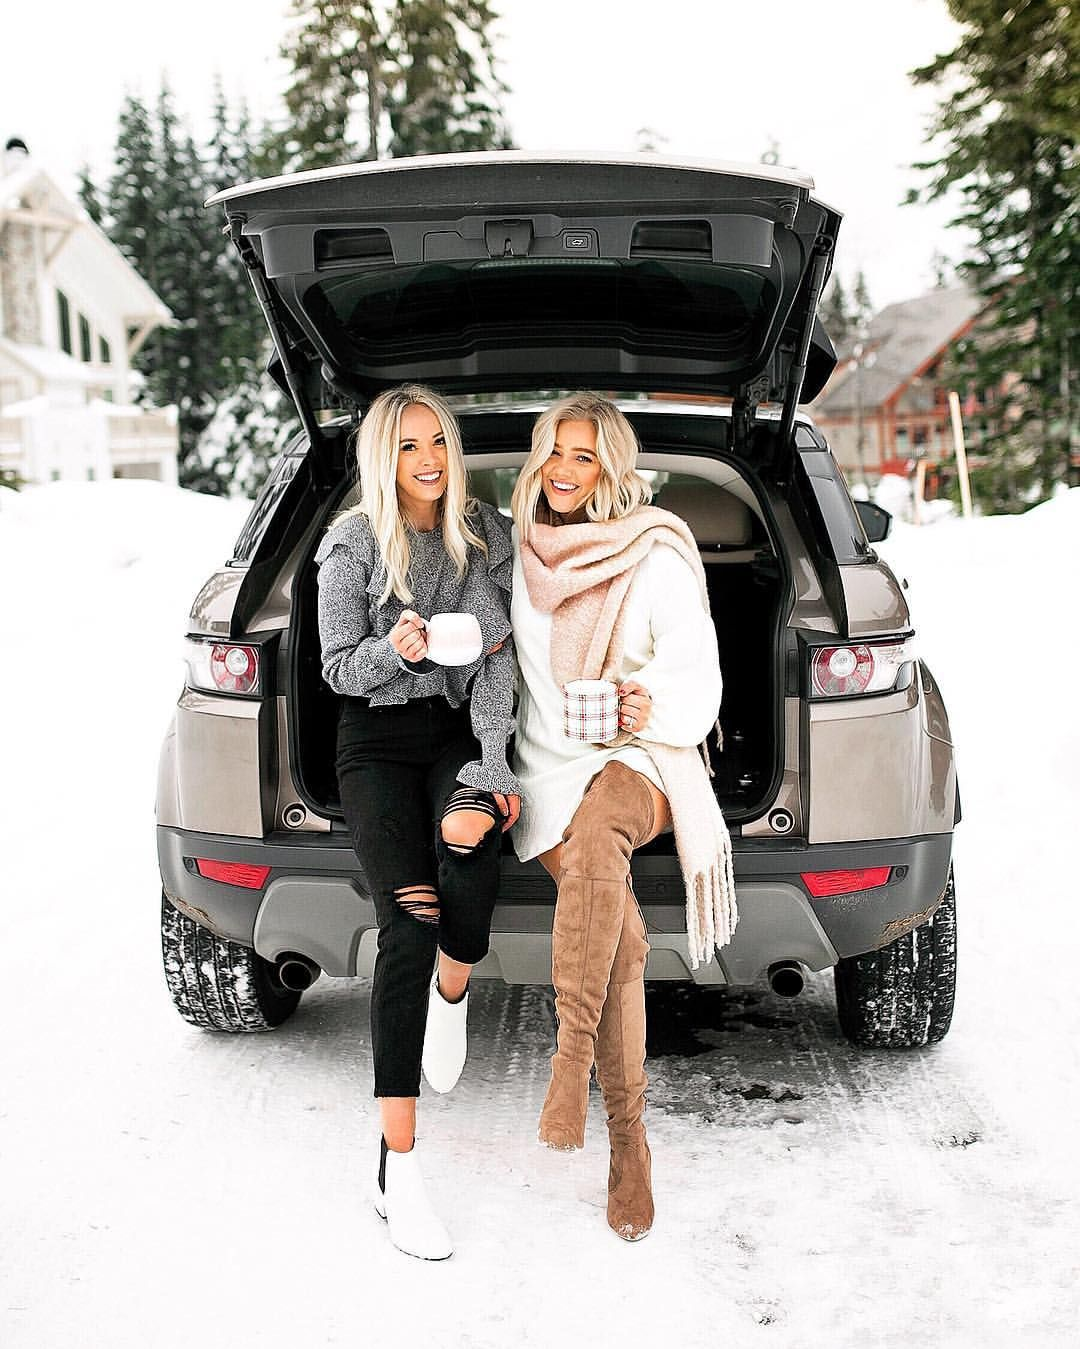 bre sheppard on instagram happy birthday karlierae when people tell ya not to make friends on the internet winter photoshoot winter outfits besties pinterest